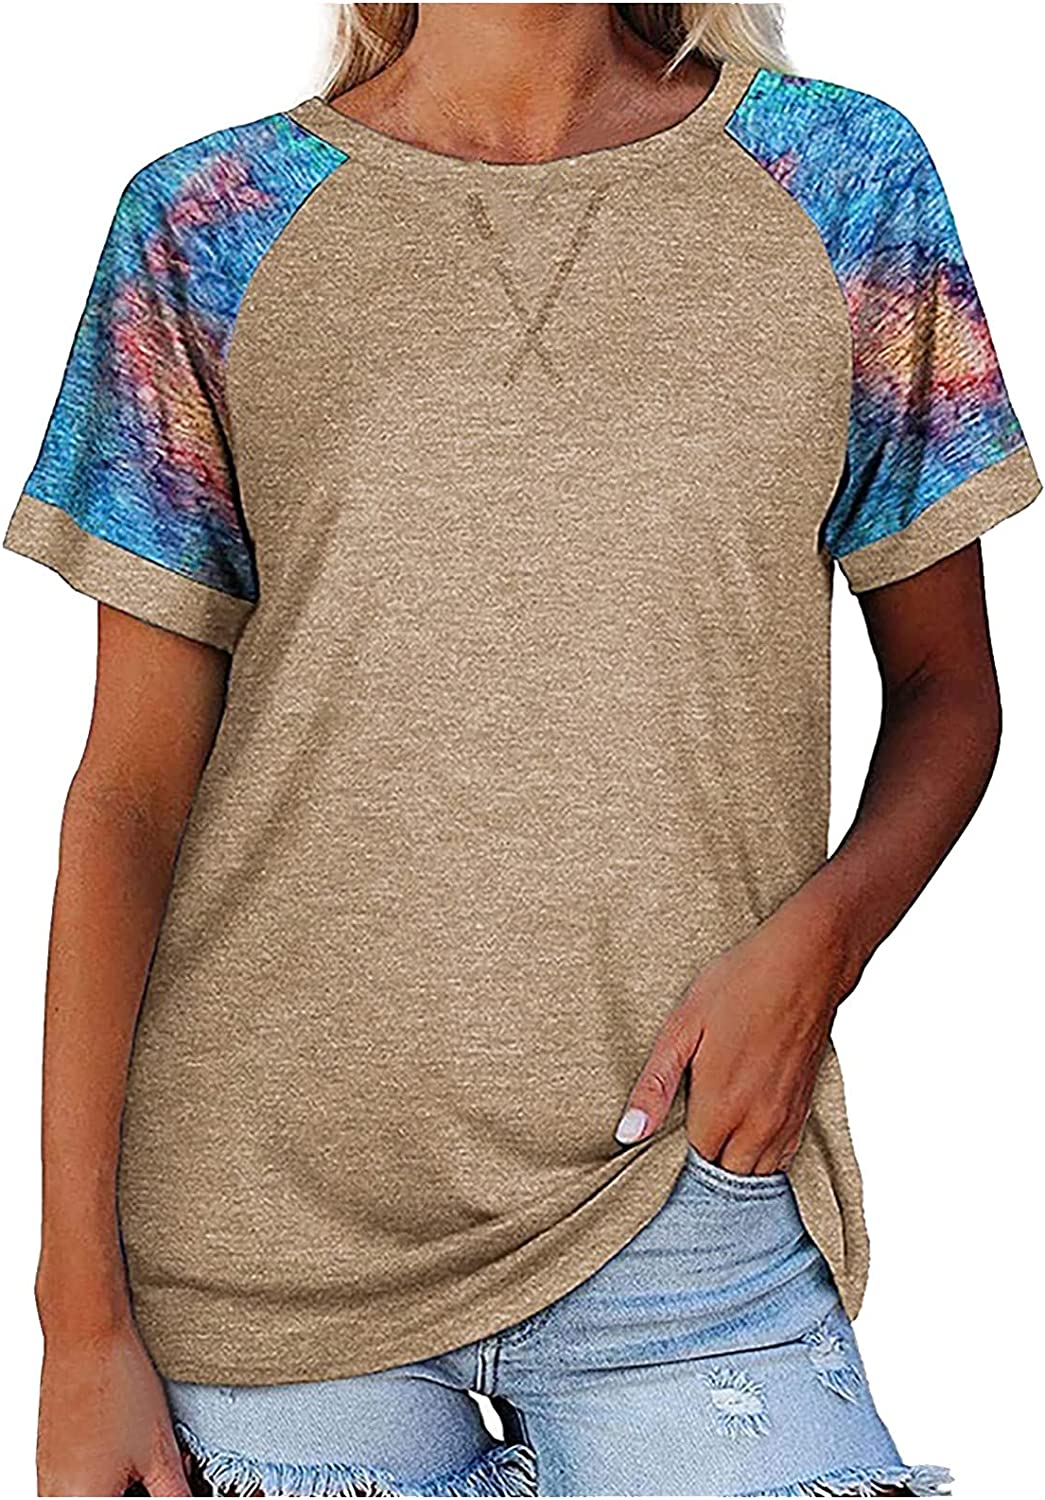 ORT Plus Summer Shirt for Women,Womens Casual Summer O-Neck T-Shirt Color Block Tie-Dye Short Sleeve Tunic Top Blouse